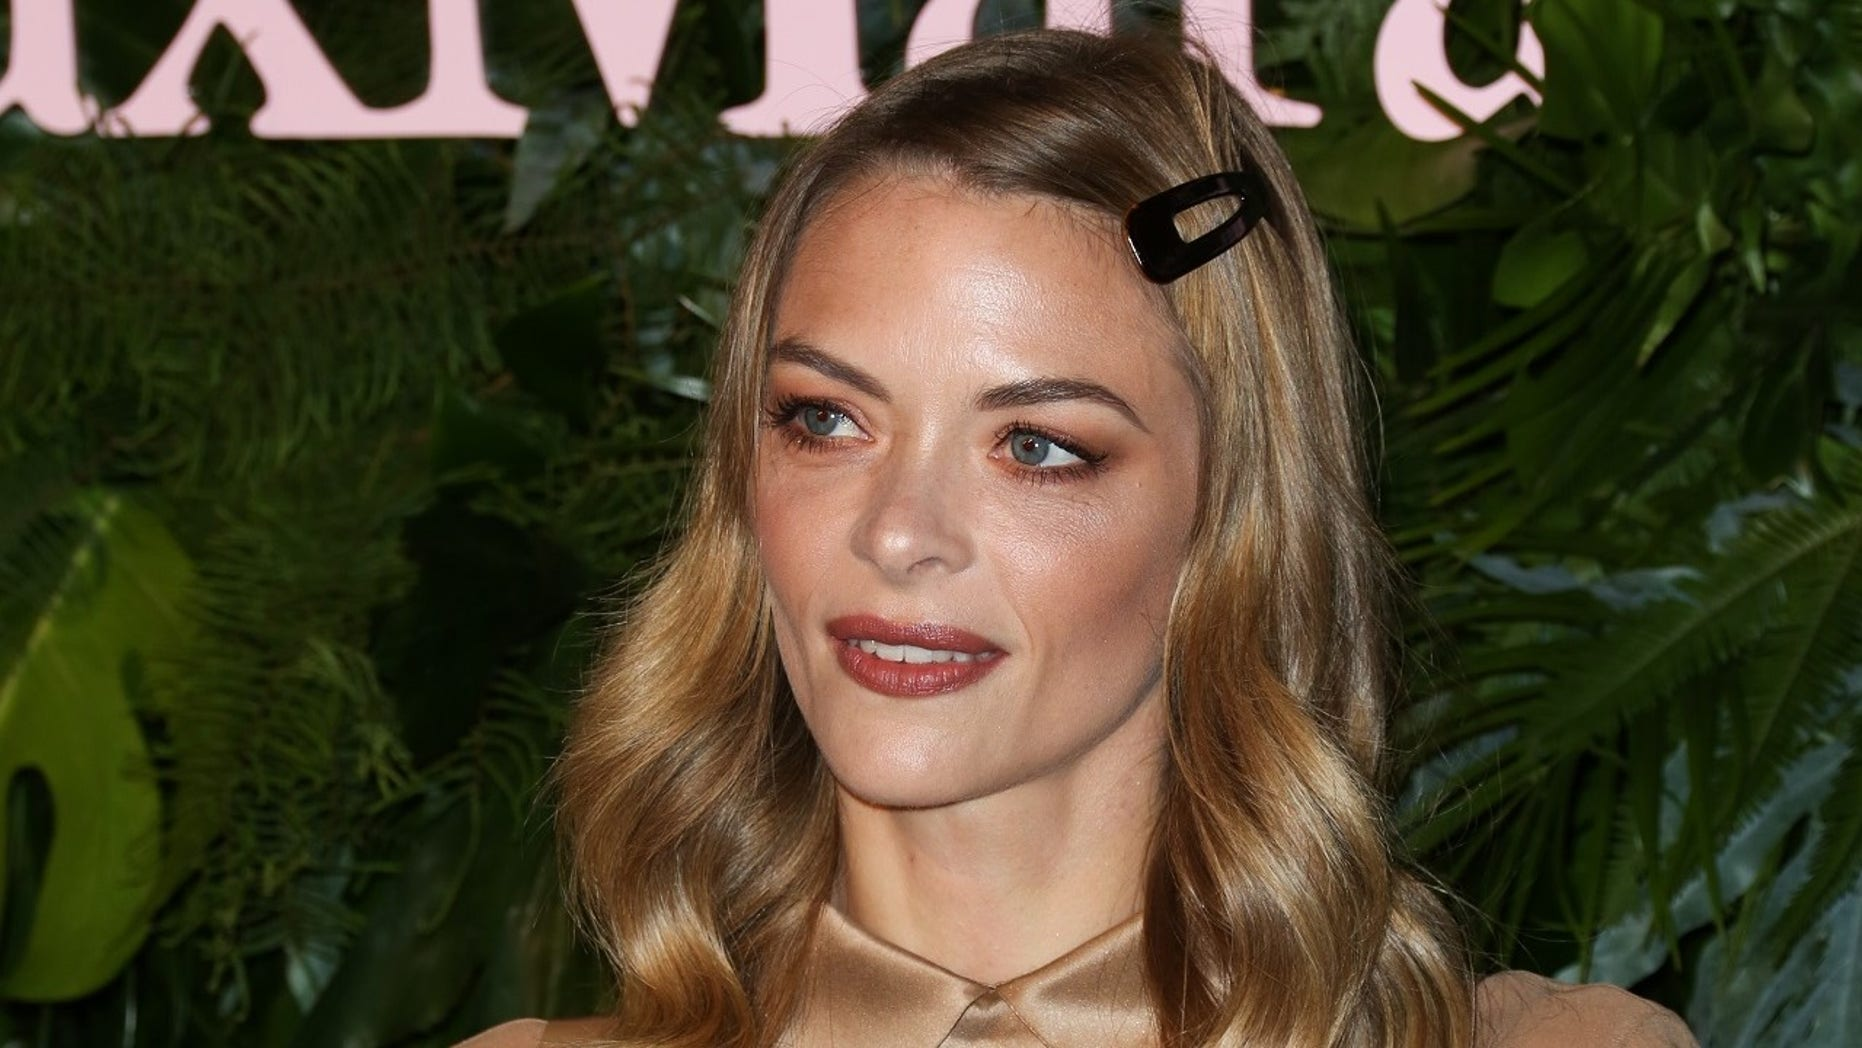 LOS ANGELES, CA - JUNE 12:  Actress Jaime King attends the Max Mara WIF Face Of The Future event at the Chateau Marmont on June 12, 2018 in Los Angeles, California.  (Photo by Paul Archuleta/FilmMagic)